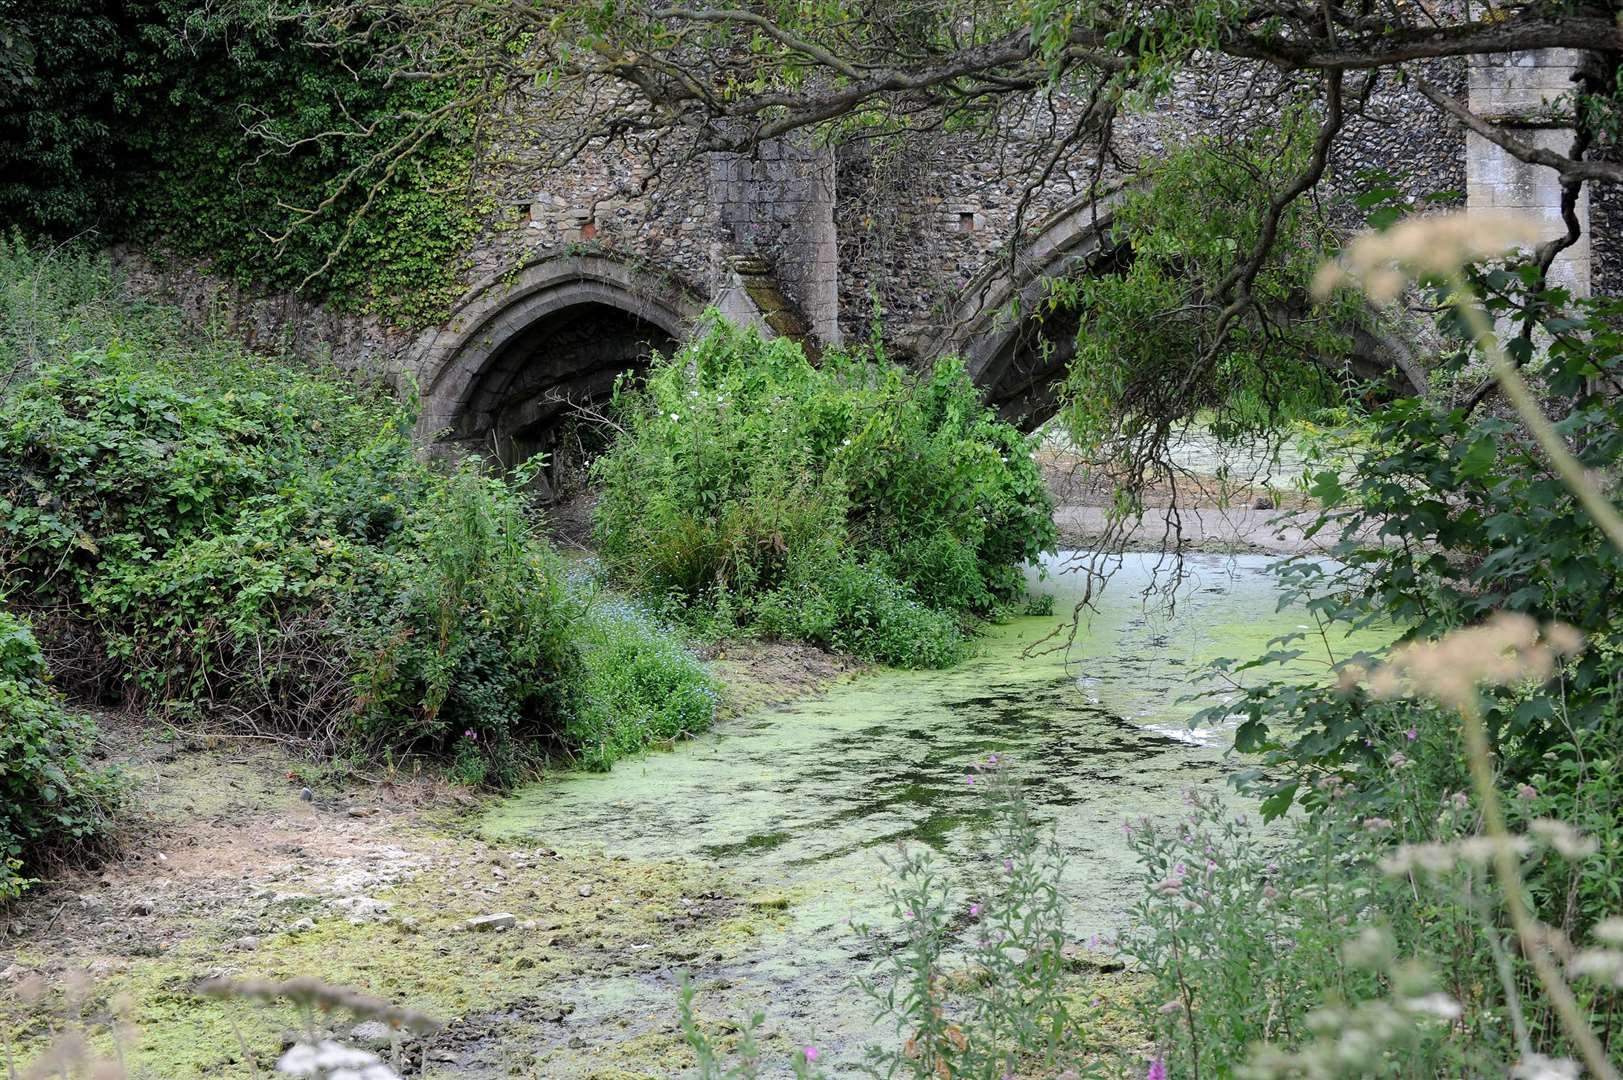 Fish have started to die in large numbers in the river between Eastgate street and the Abbey Gardens. The water is lower than usual with a large amount of algae. Picture by Mecha Morton.